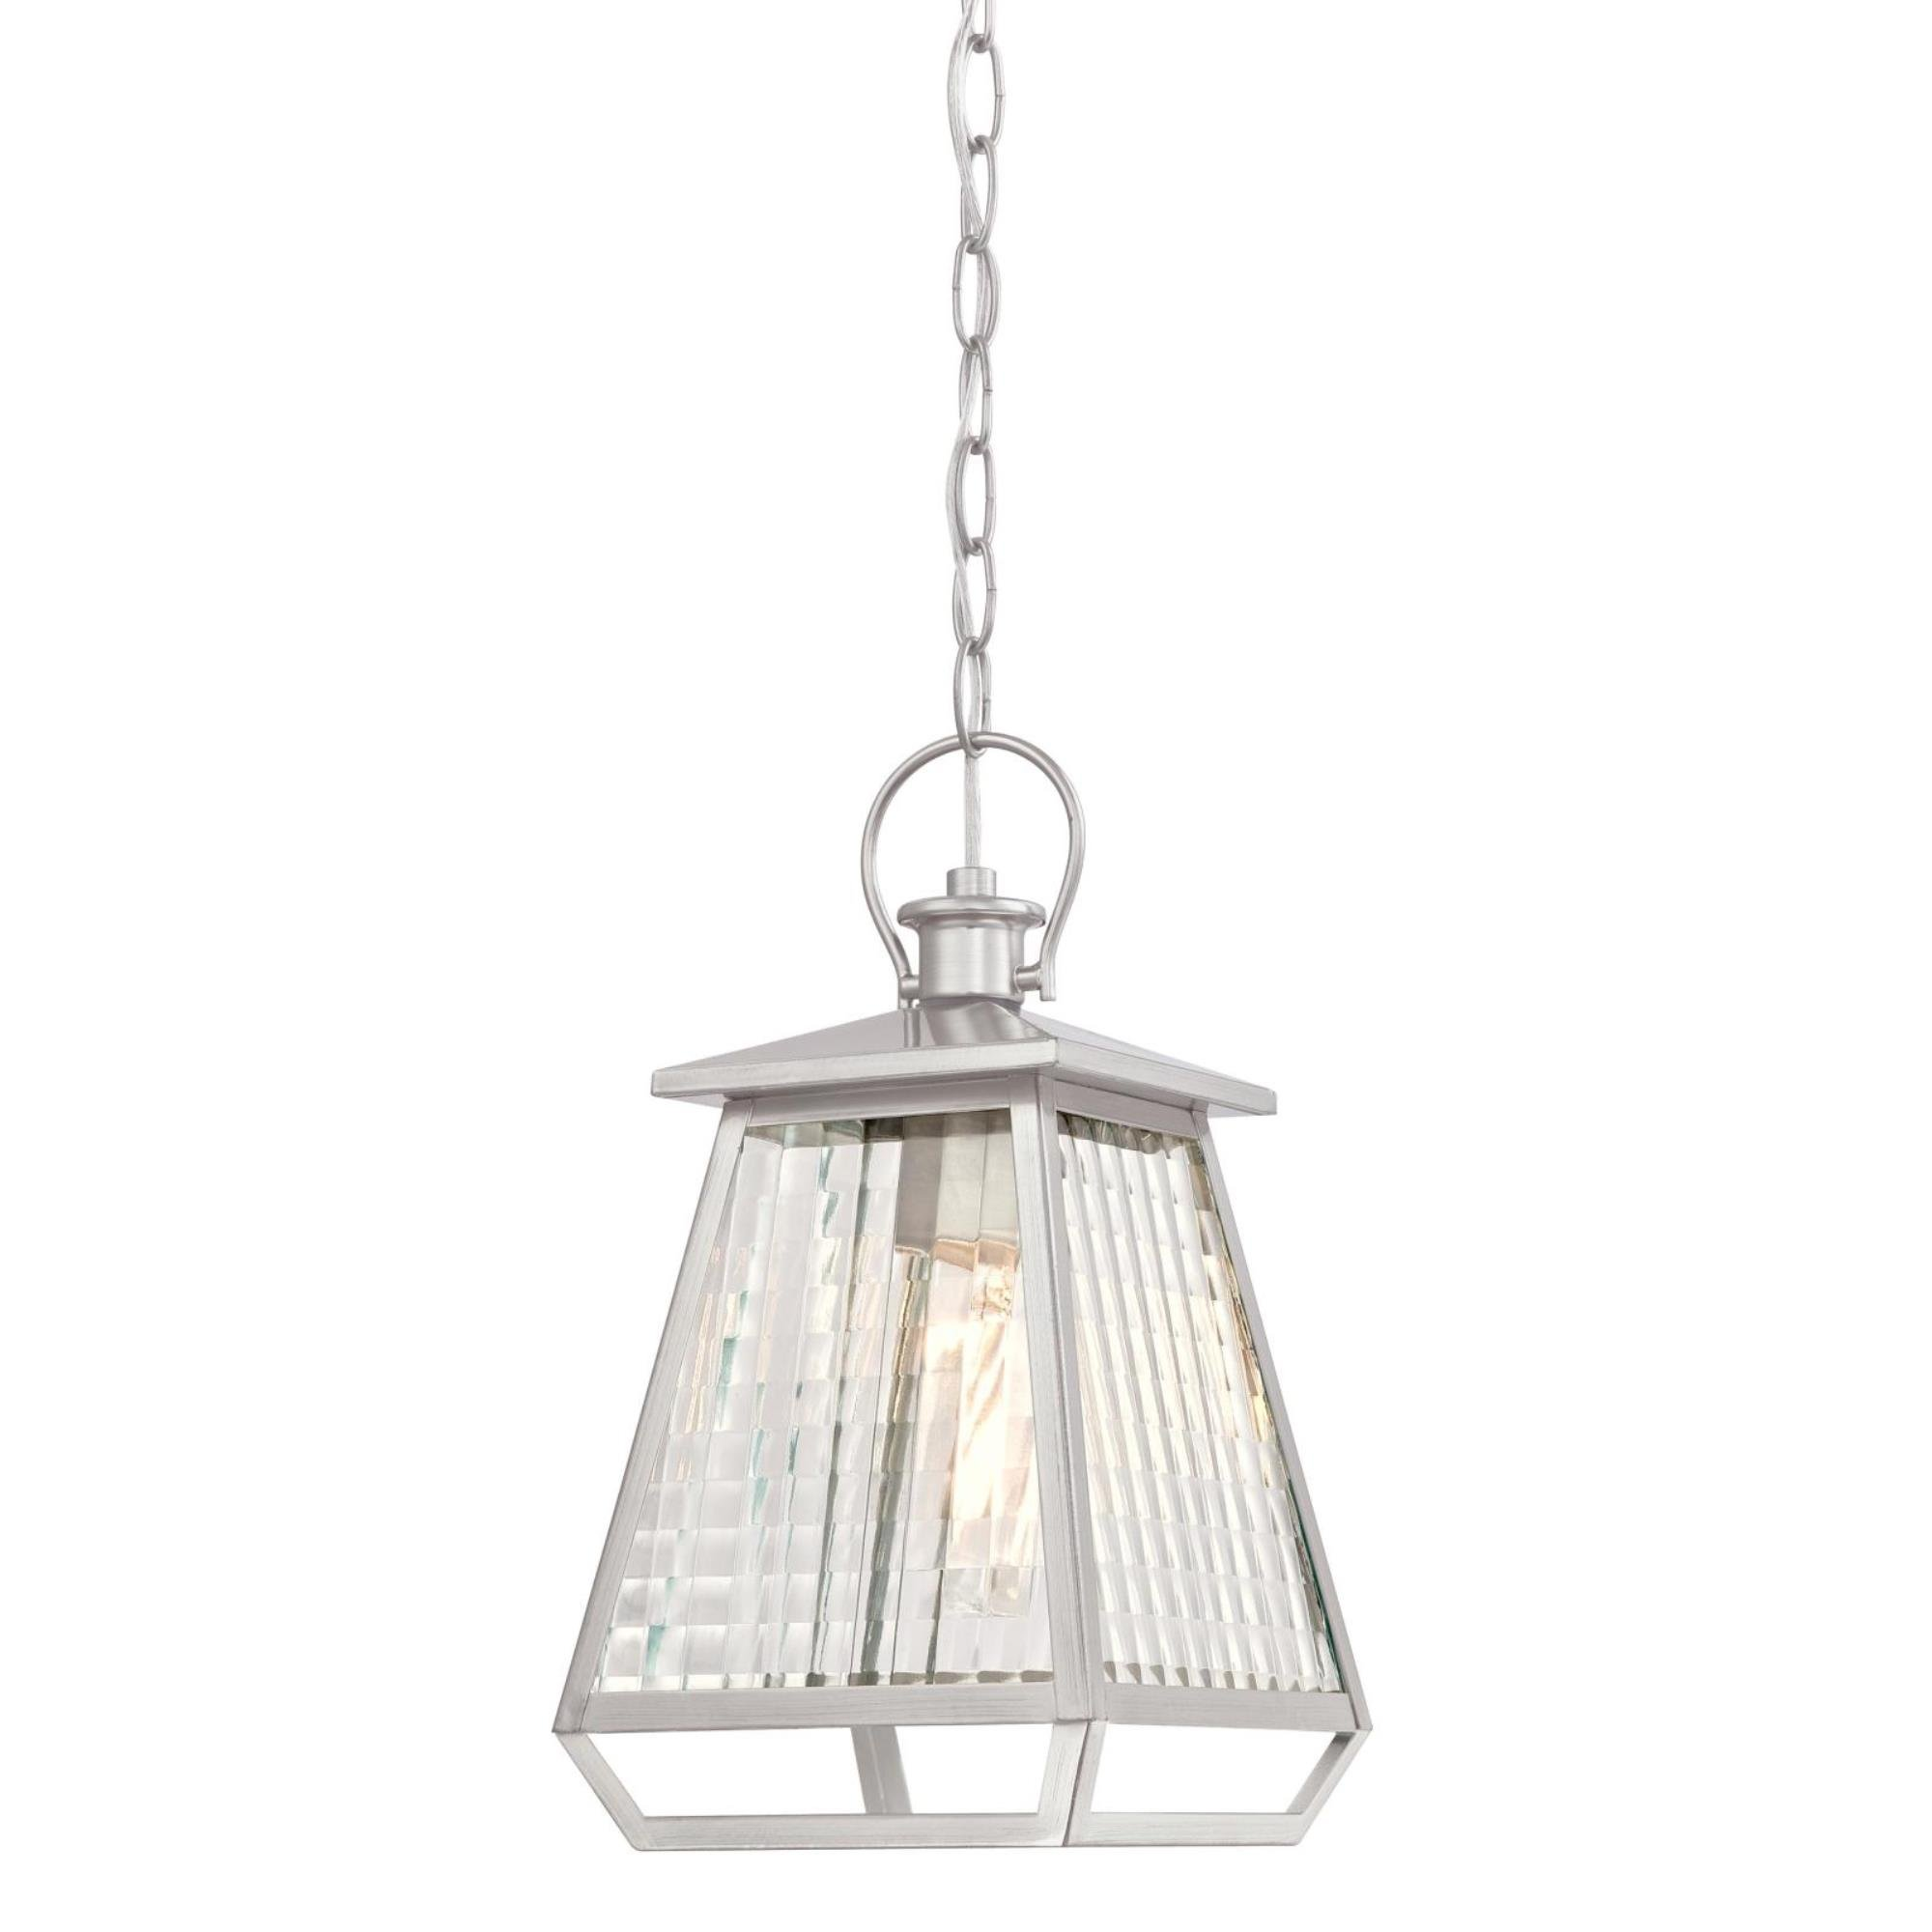 Westinghouse Lighting 6357600 Aurelie One-Light, Nickel Luster Finish with Clear Waffle Glass Outdoor Pendant,